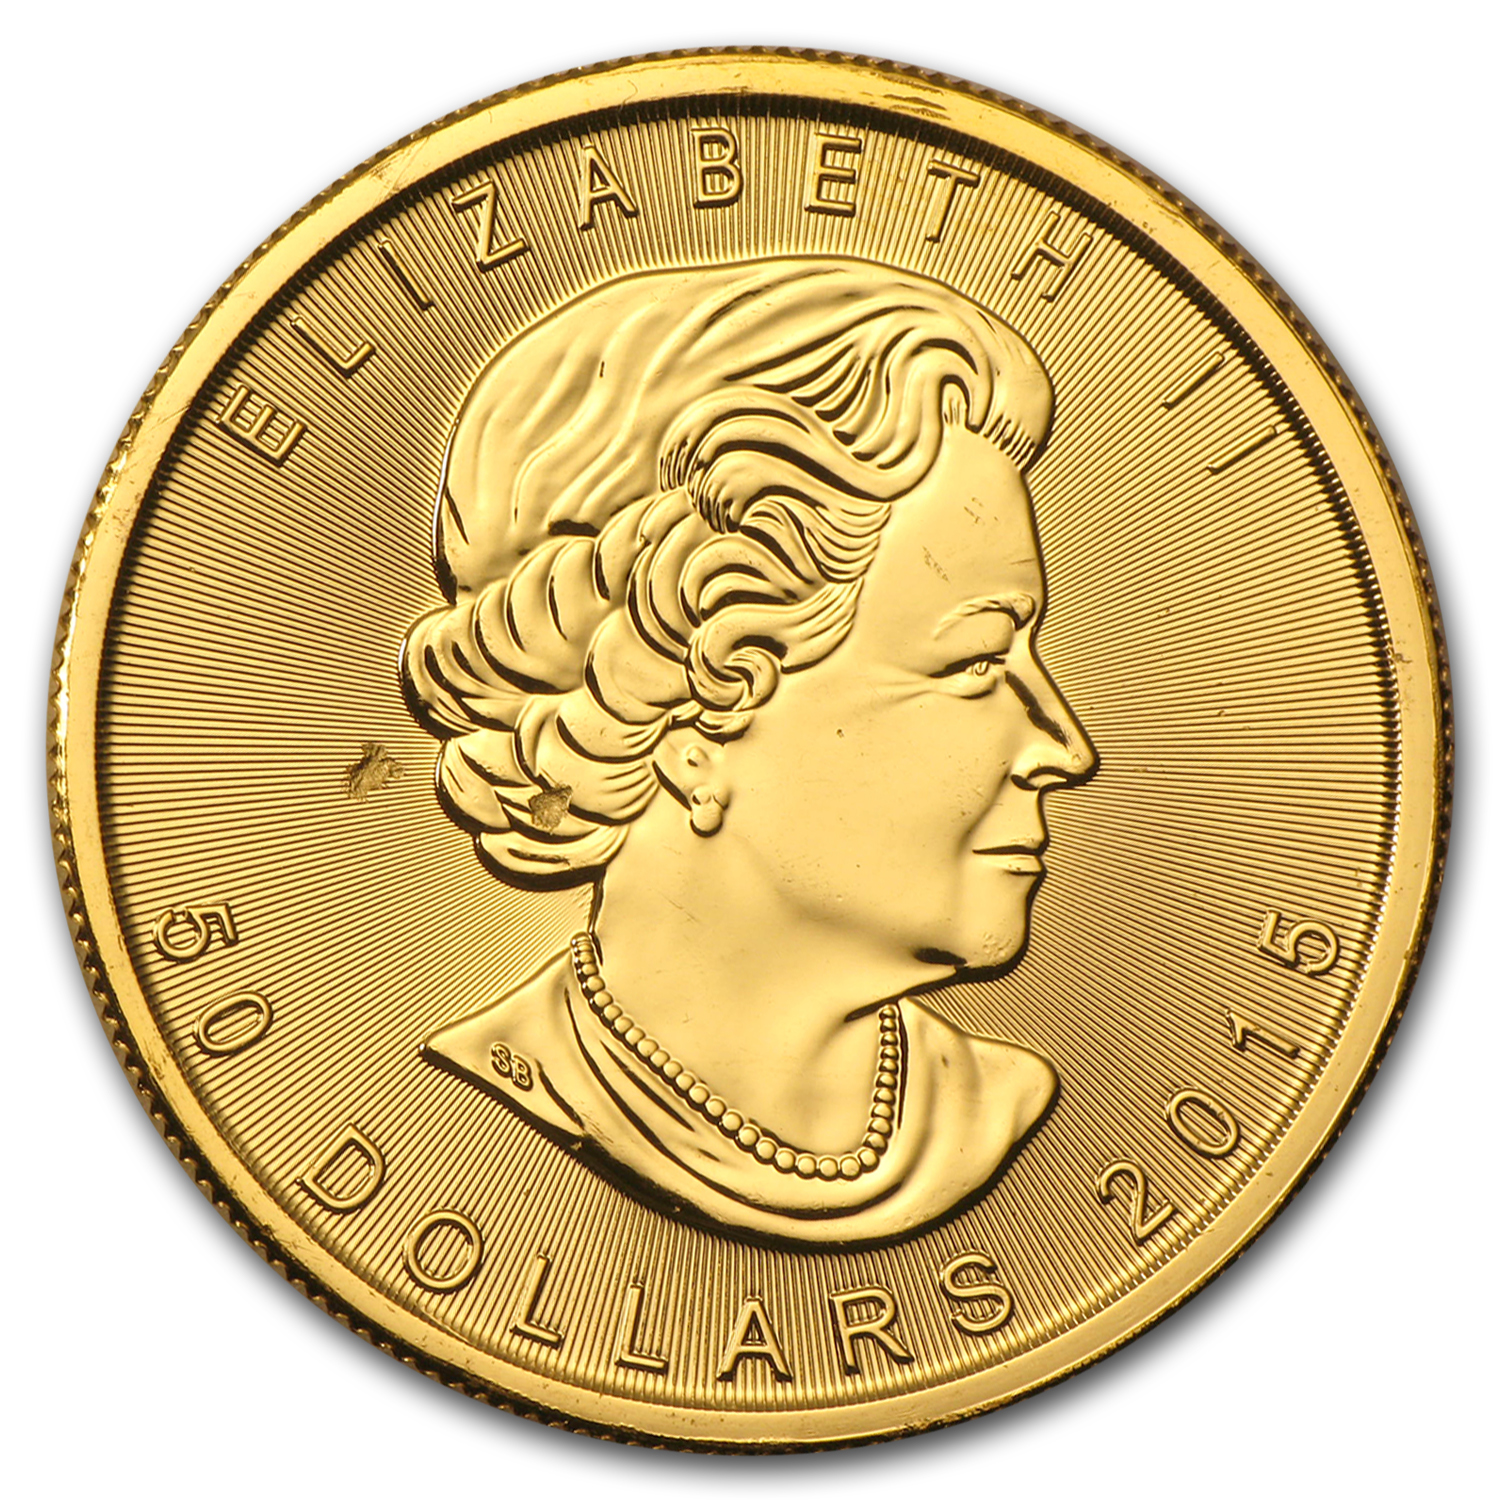 2015 Canada 1 oz Gold Maple Leaf BU (Strike-Thru)